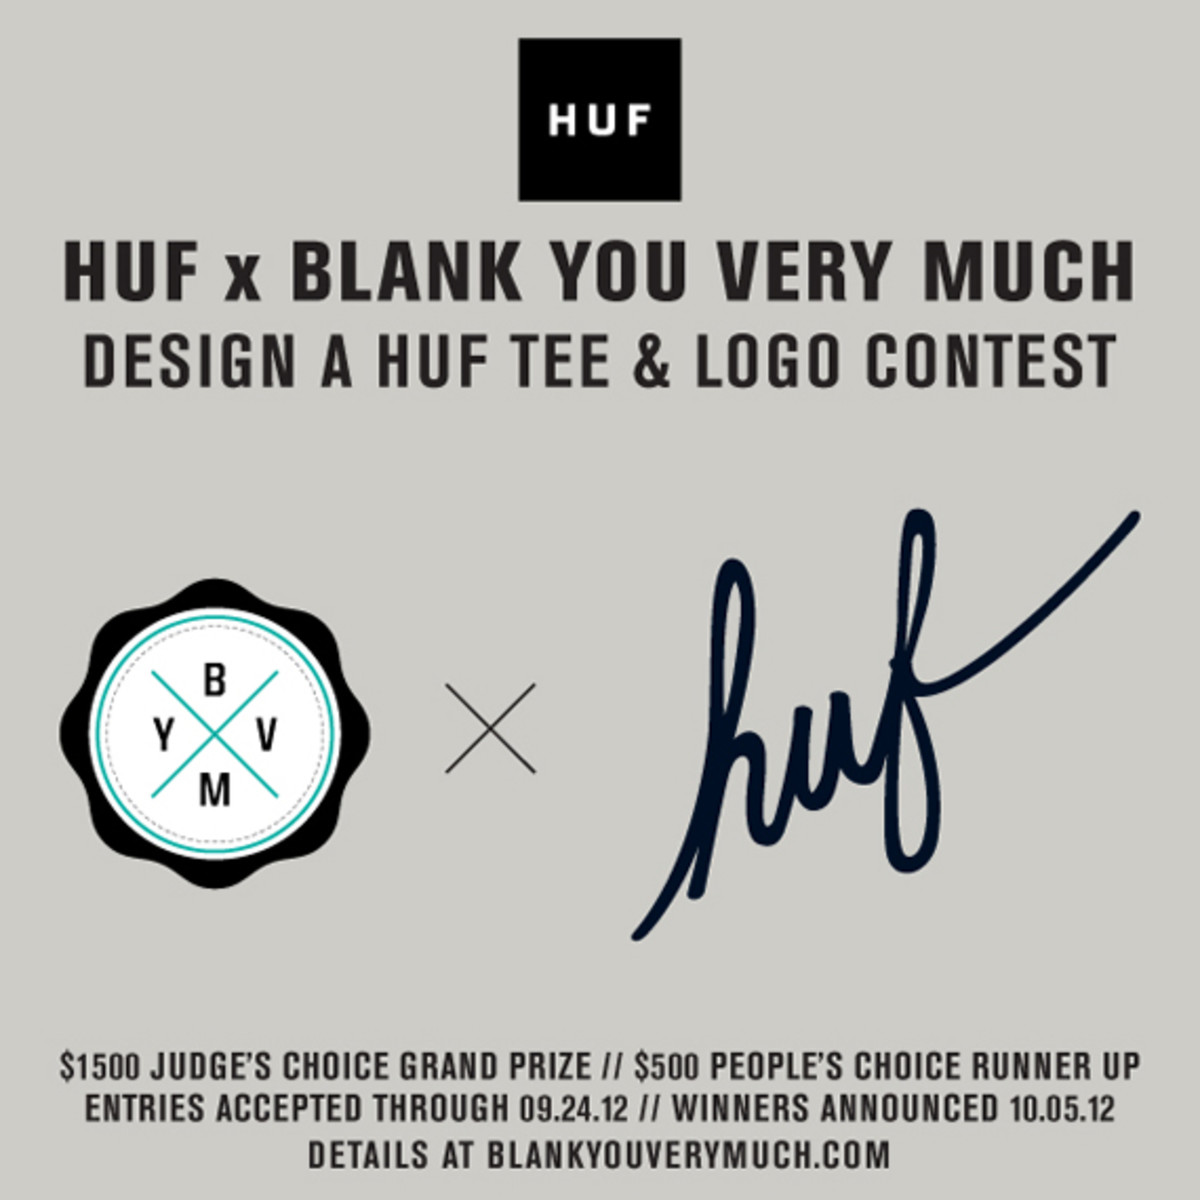 huf-blank-you-very-much-design-a-t-shirt-and-logo-contest-01